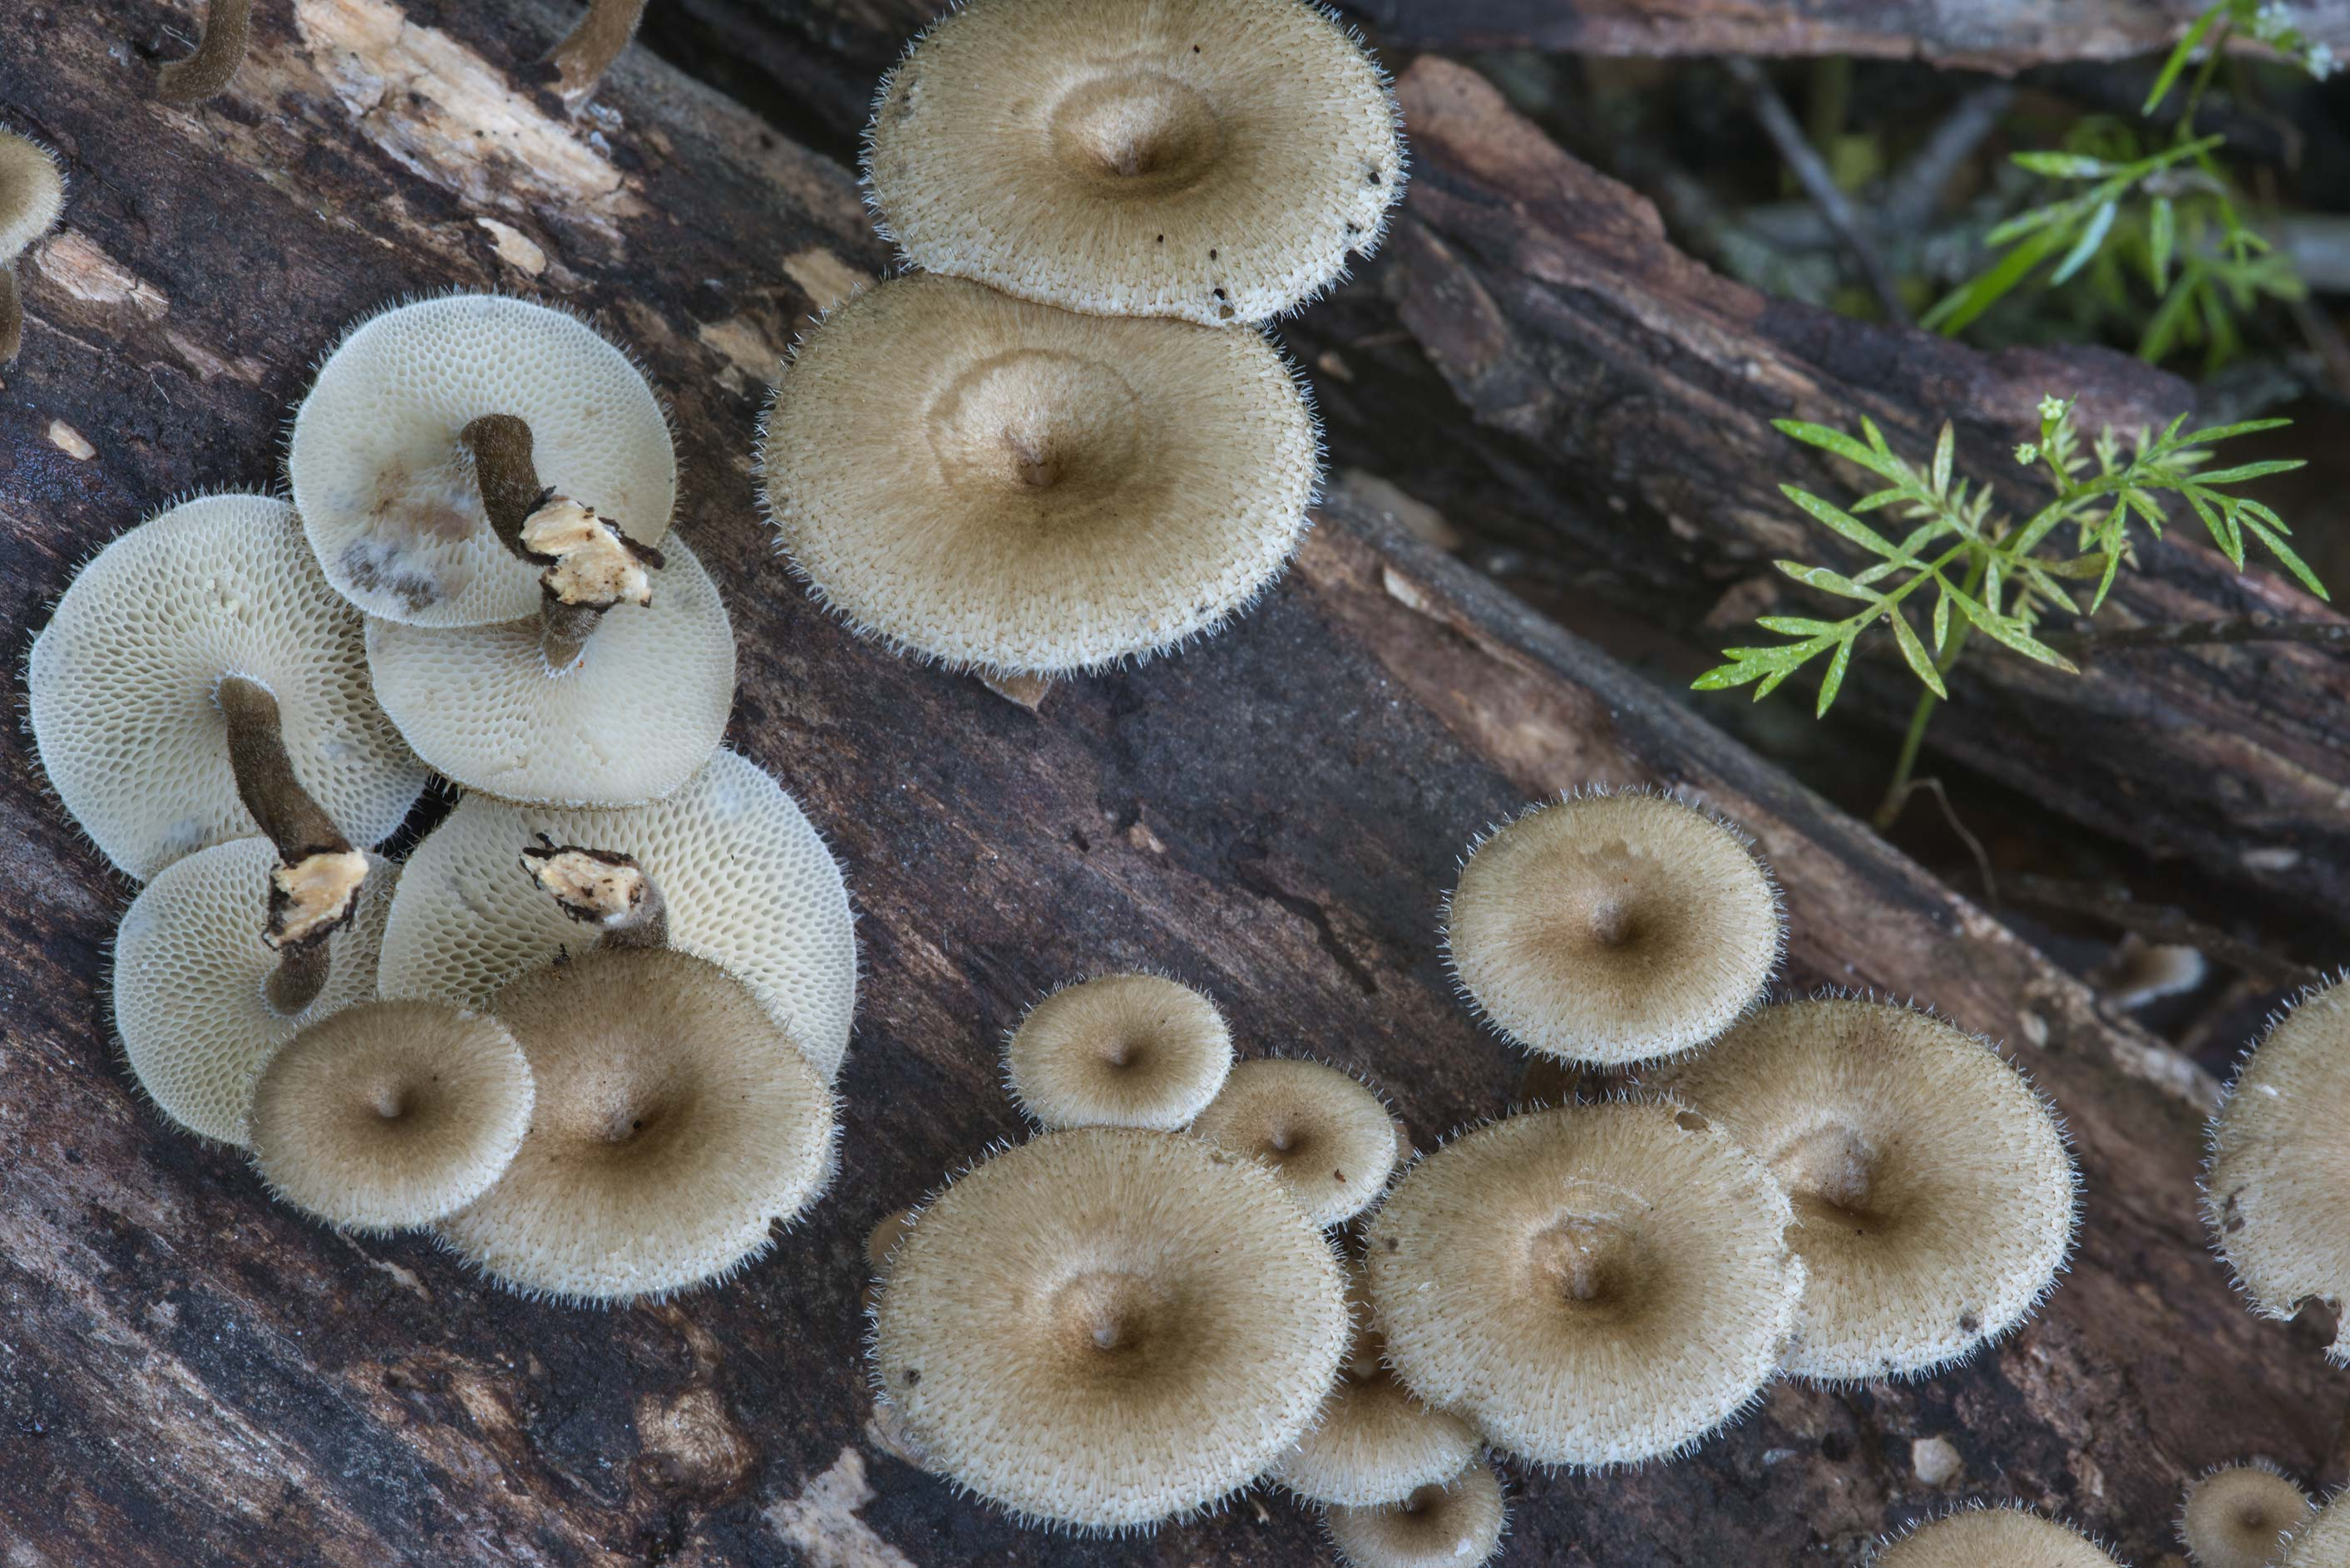 Lentinus crinitus mushrooms on rotting wood in Lick Creek Park. College Station, Texas